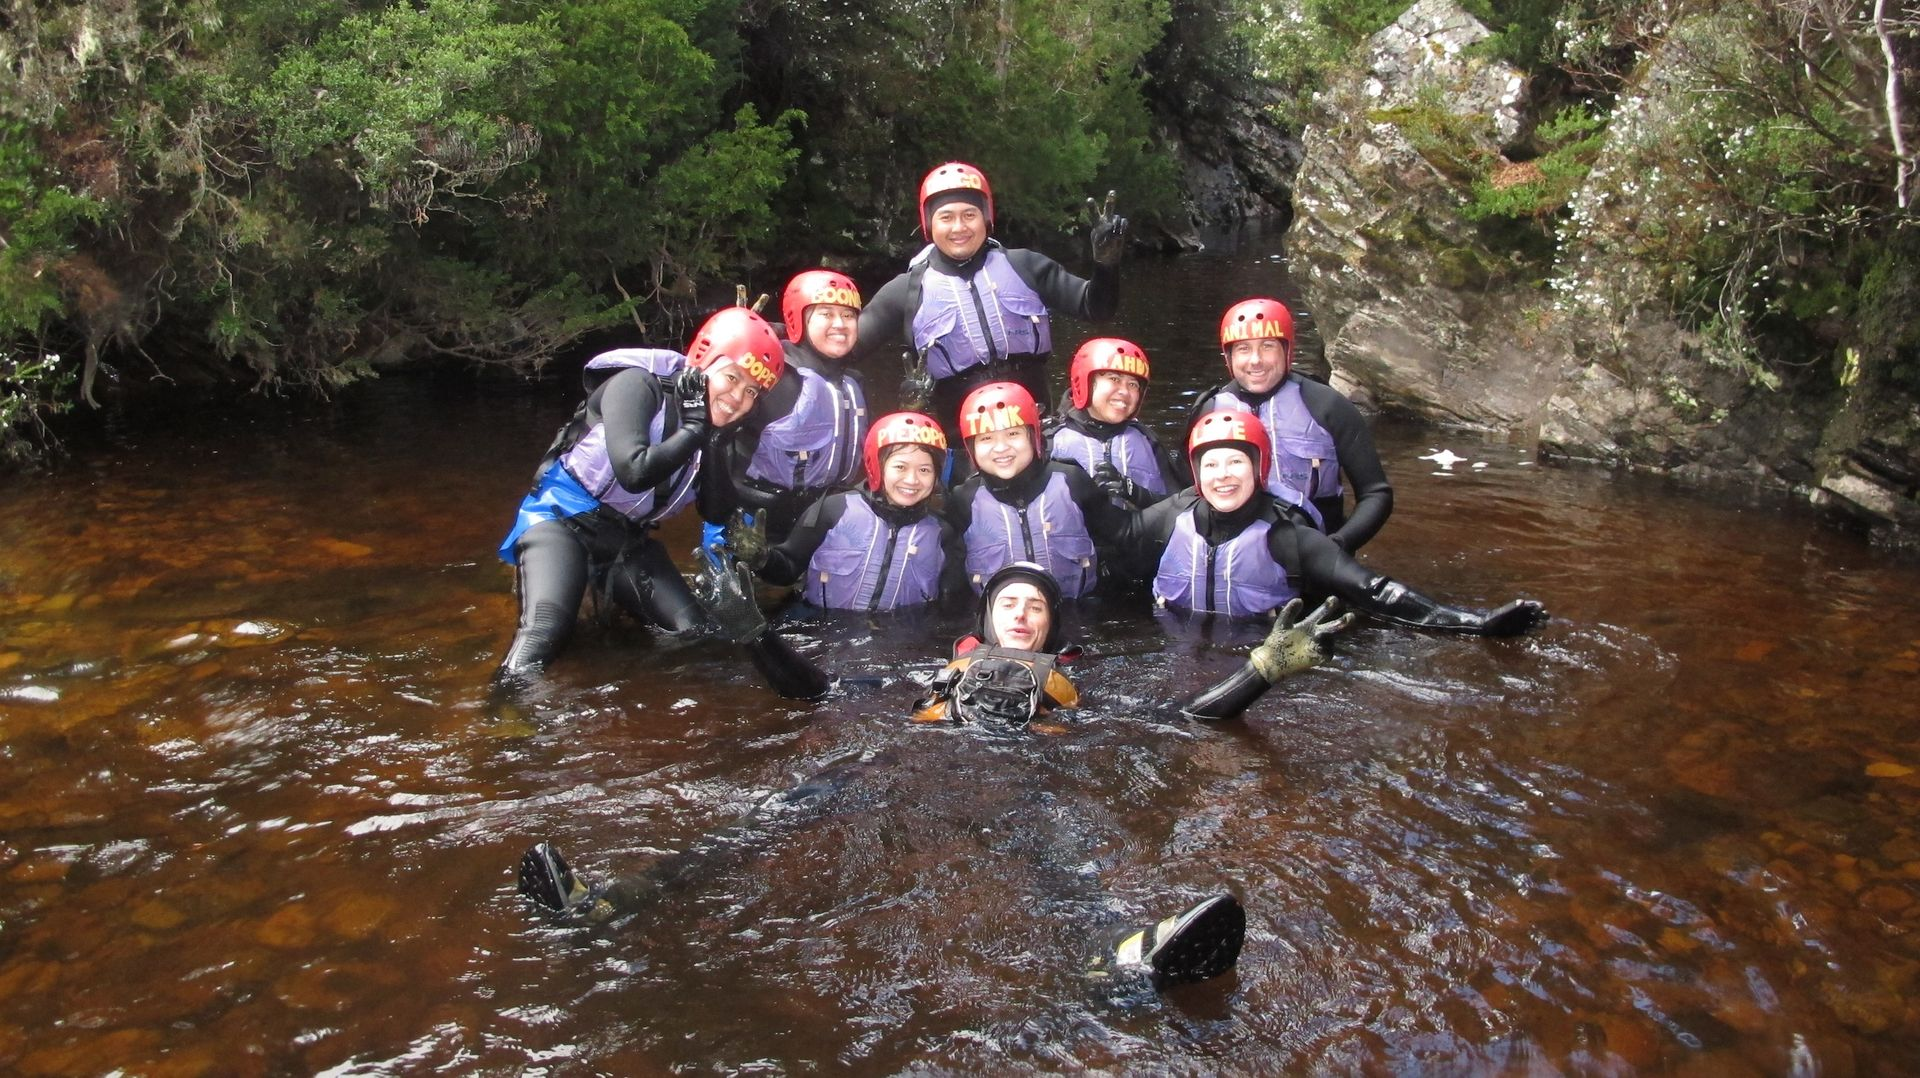 Lost World Family Canyoning - with Kids Cradle Mountain TAS, Australia #34547afd-770b-483e-9d18-f2ef41442cb4